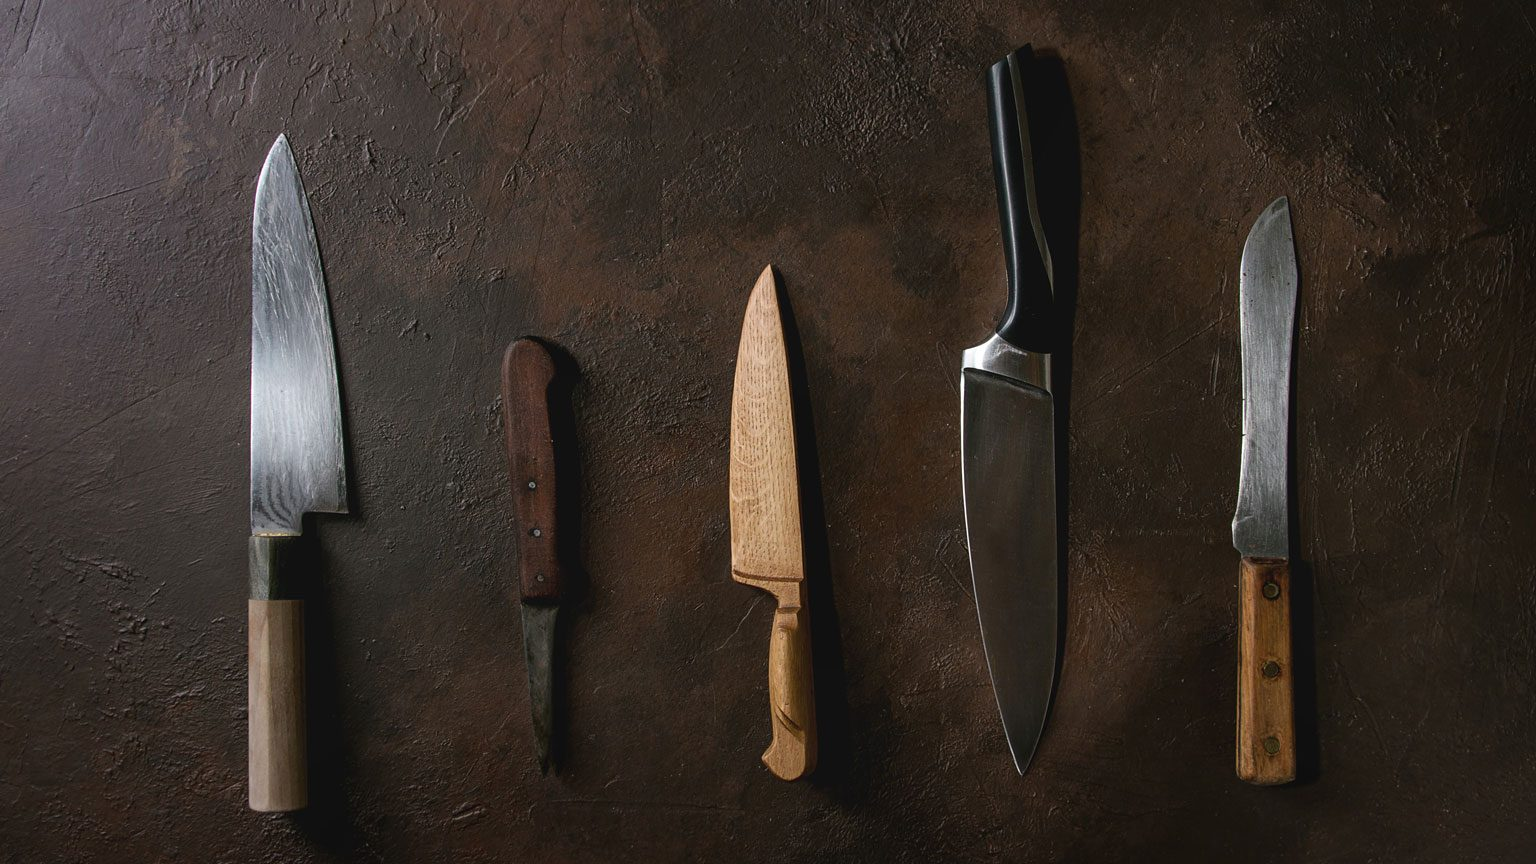 Collection of different kitchen metal, wooden and vintage knives in row over dark brown texture background.